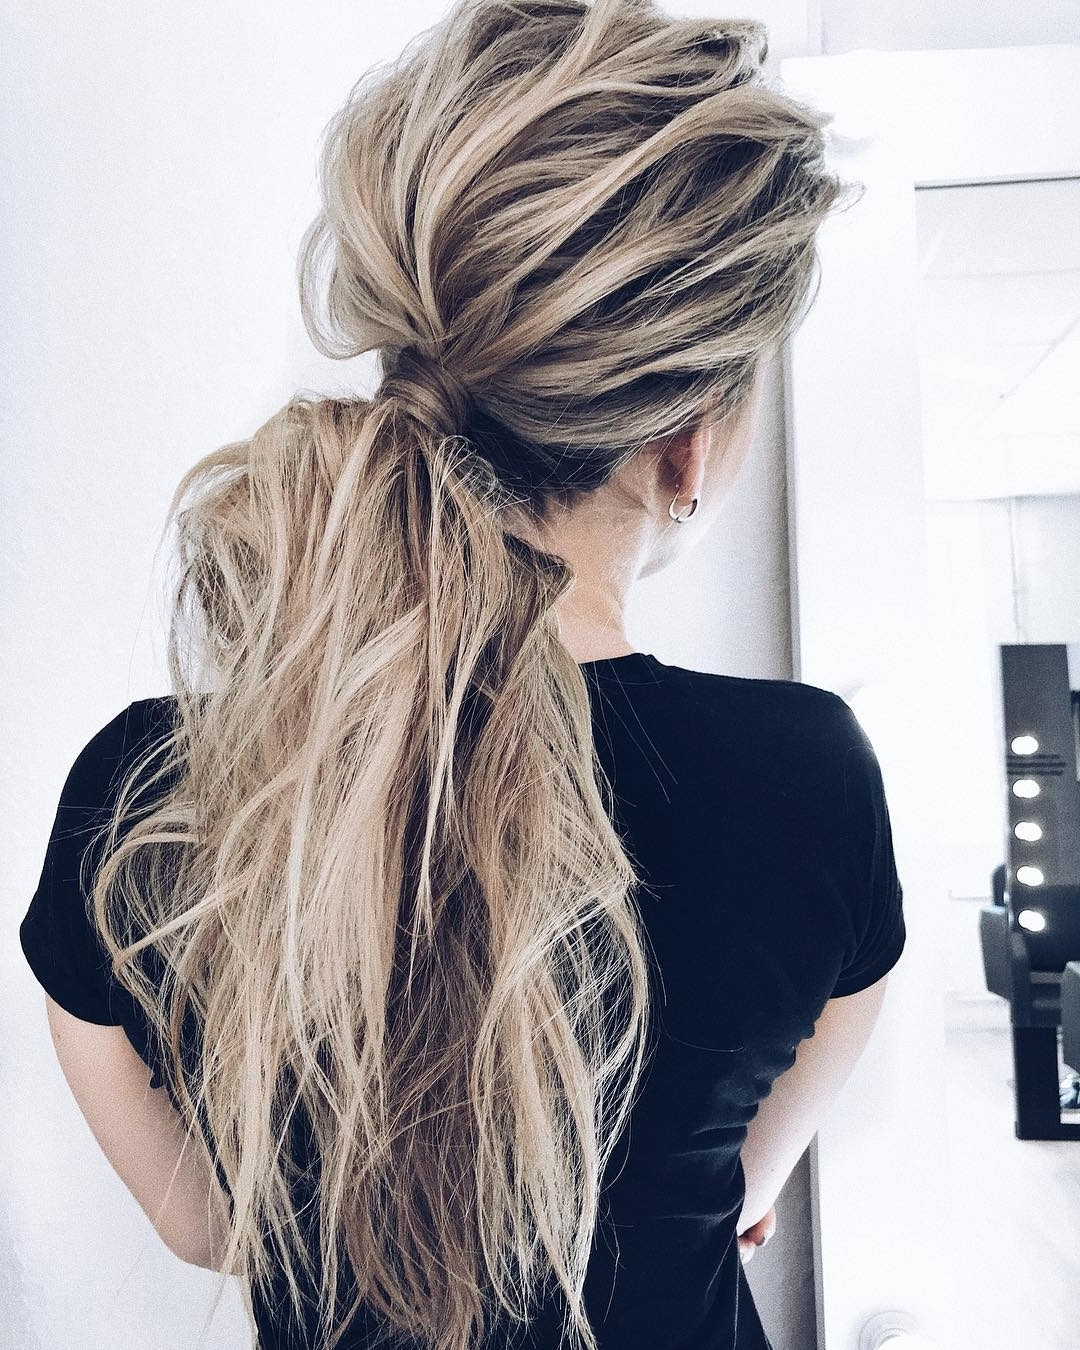 10 Creative Ponytail Hairstyles For Long Hair, Summer Hairstyle Within Favorite Messy Double Braid Ponytail Hairstyles (View 16 of 20)